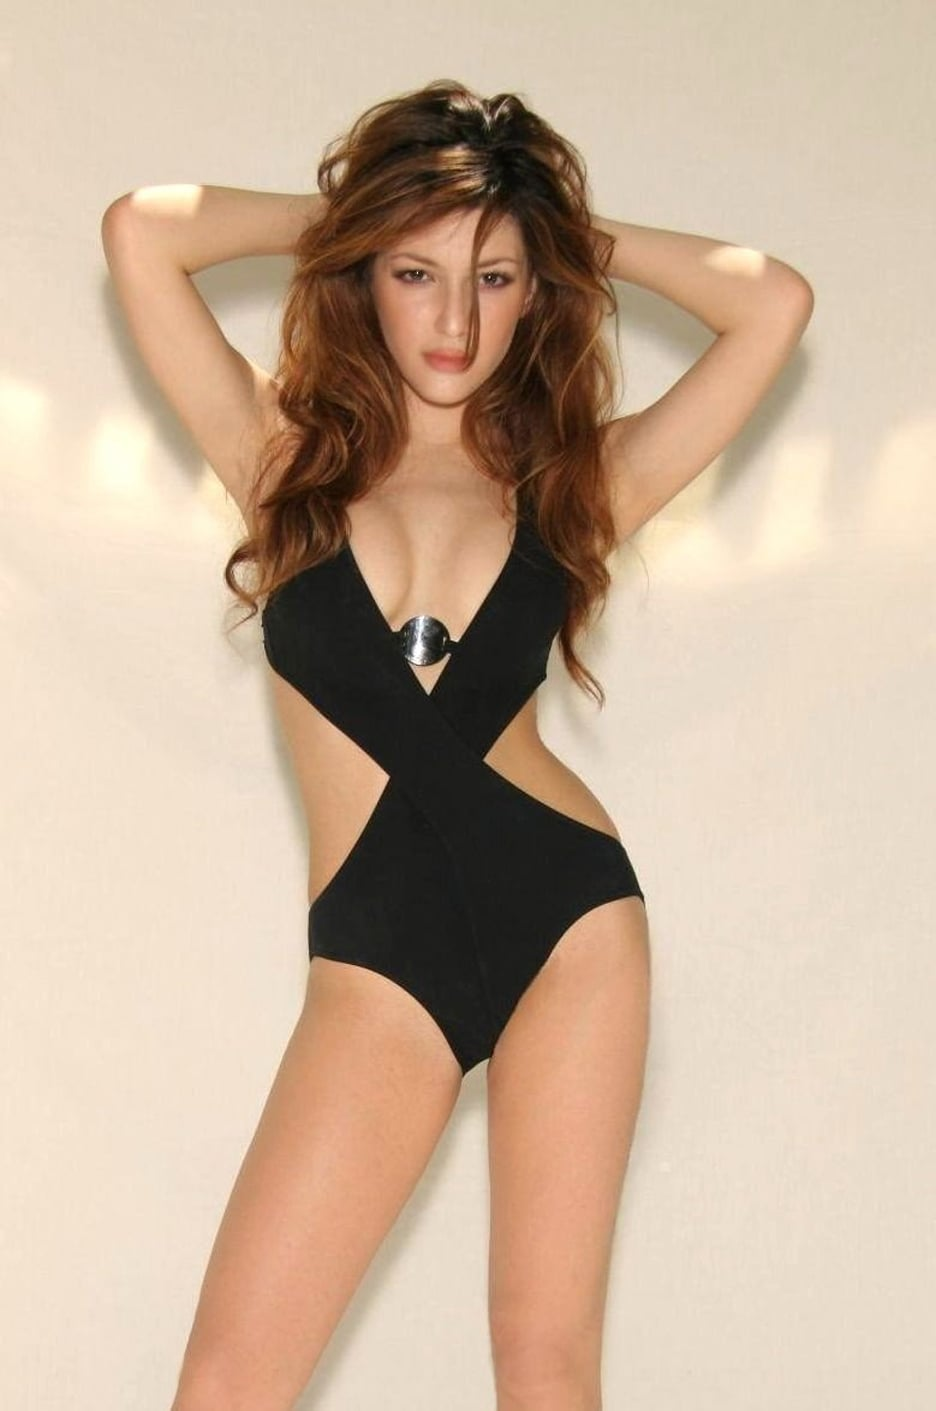 2019 Elena Satine naked (77 foto and video), Pussy, Fappening, Instagram, cleavage 2006